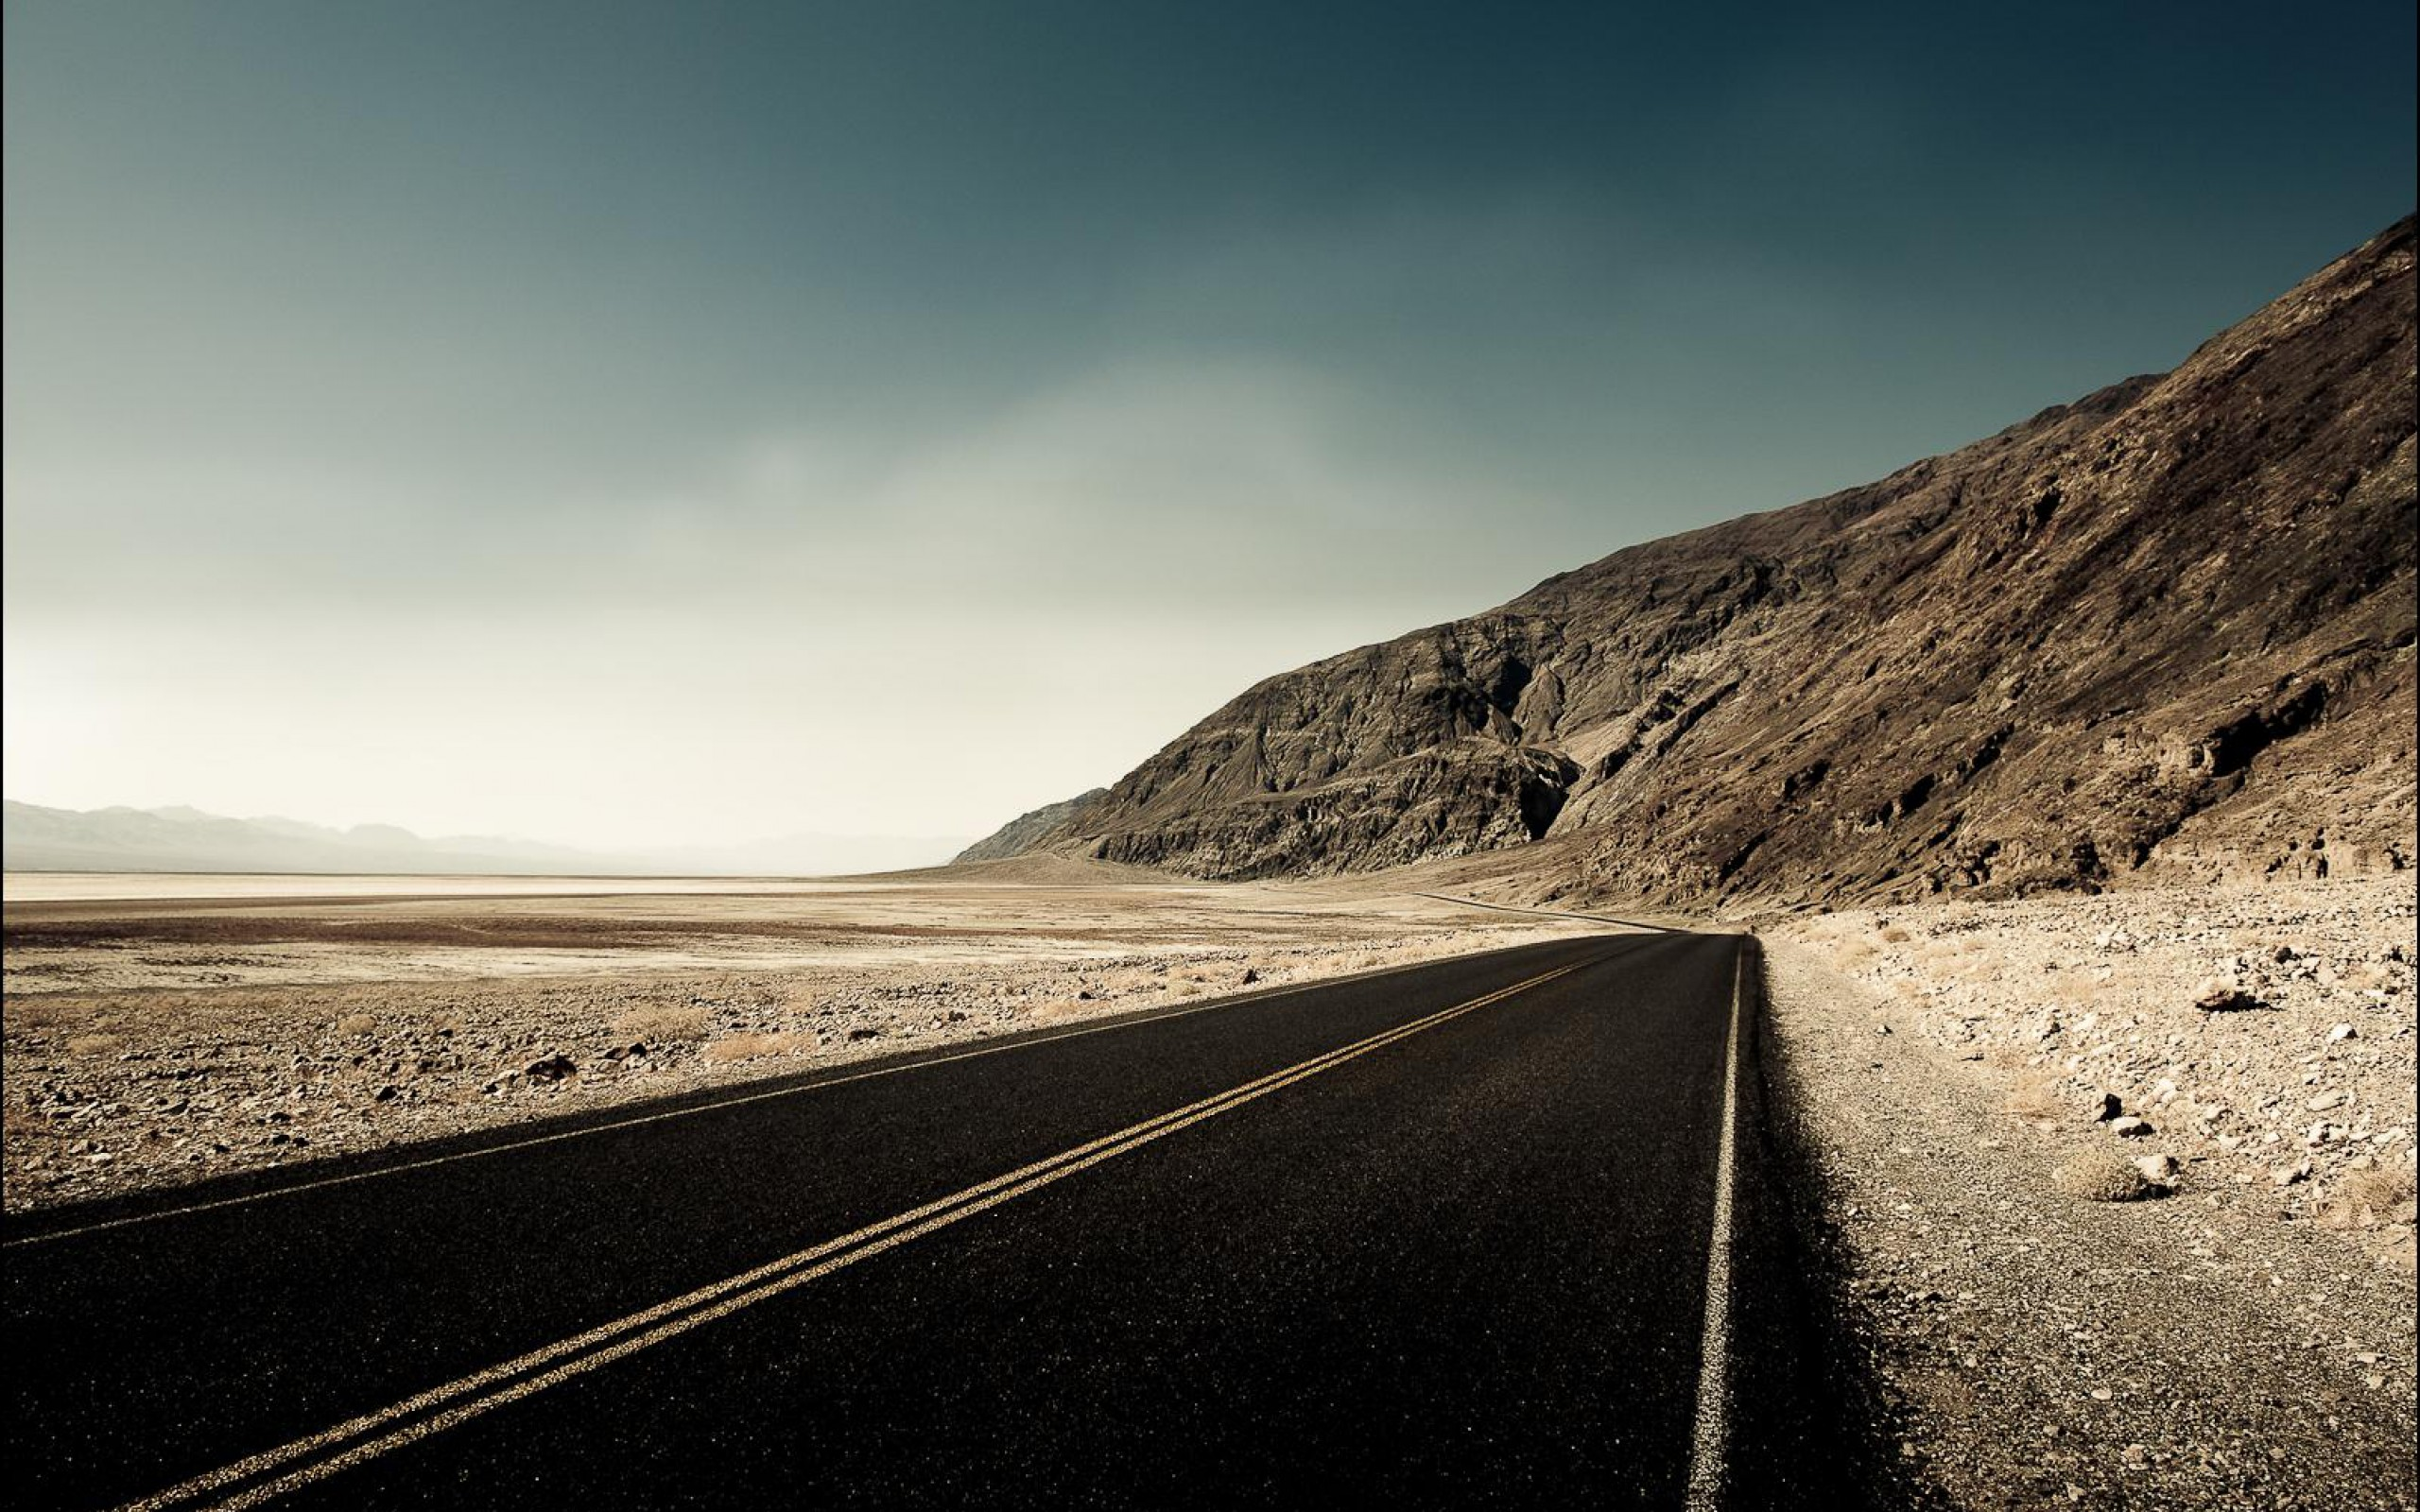 Unforgettable Landscape Empty Desert Road Wallpaper